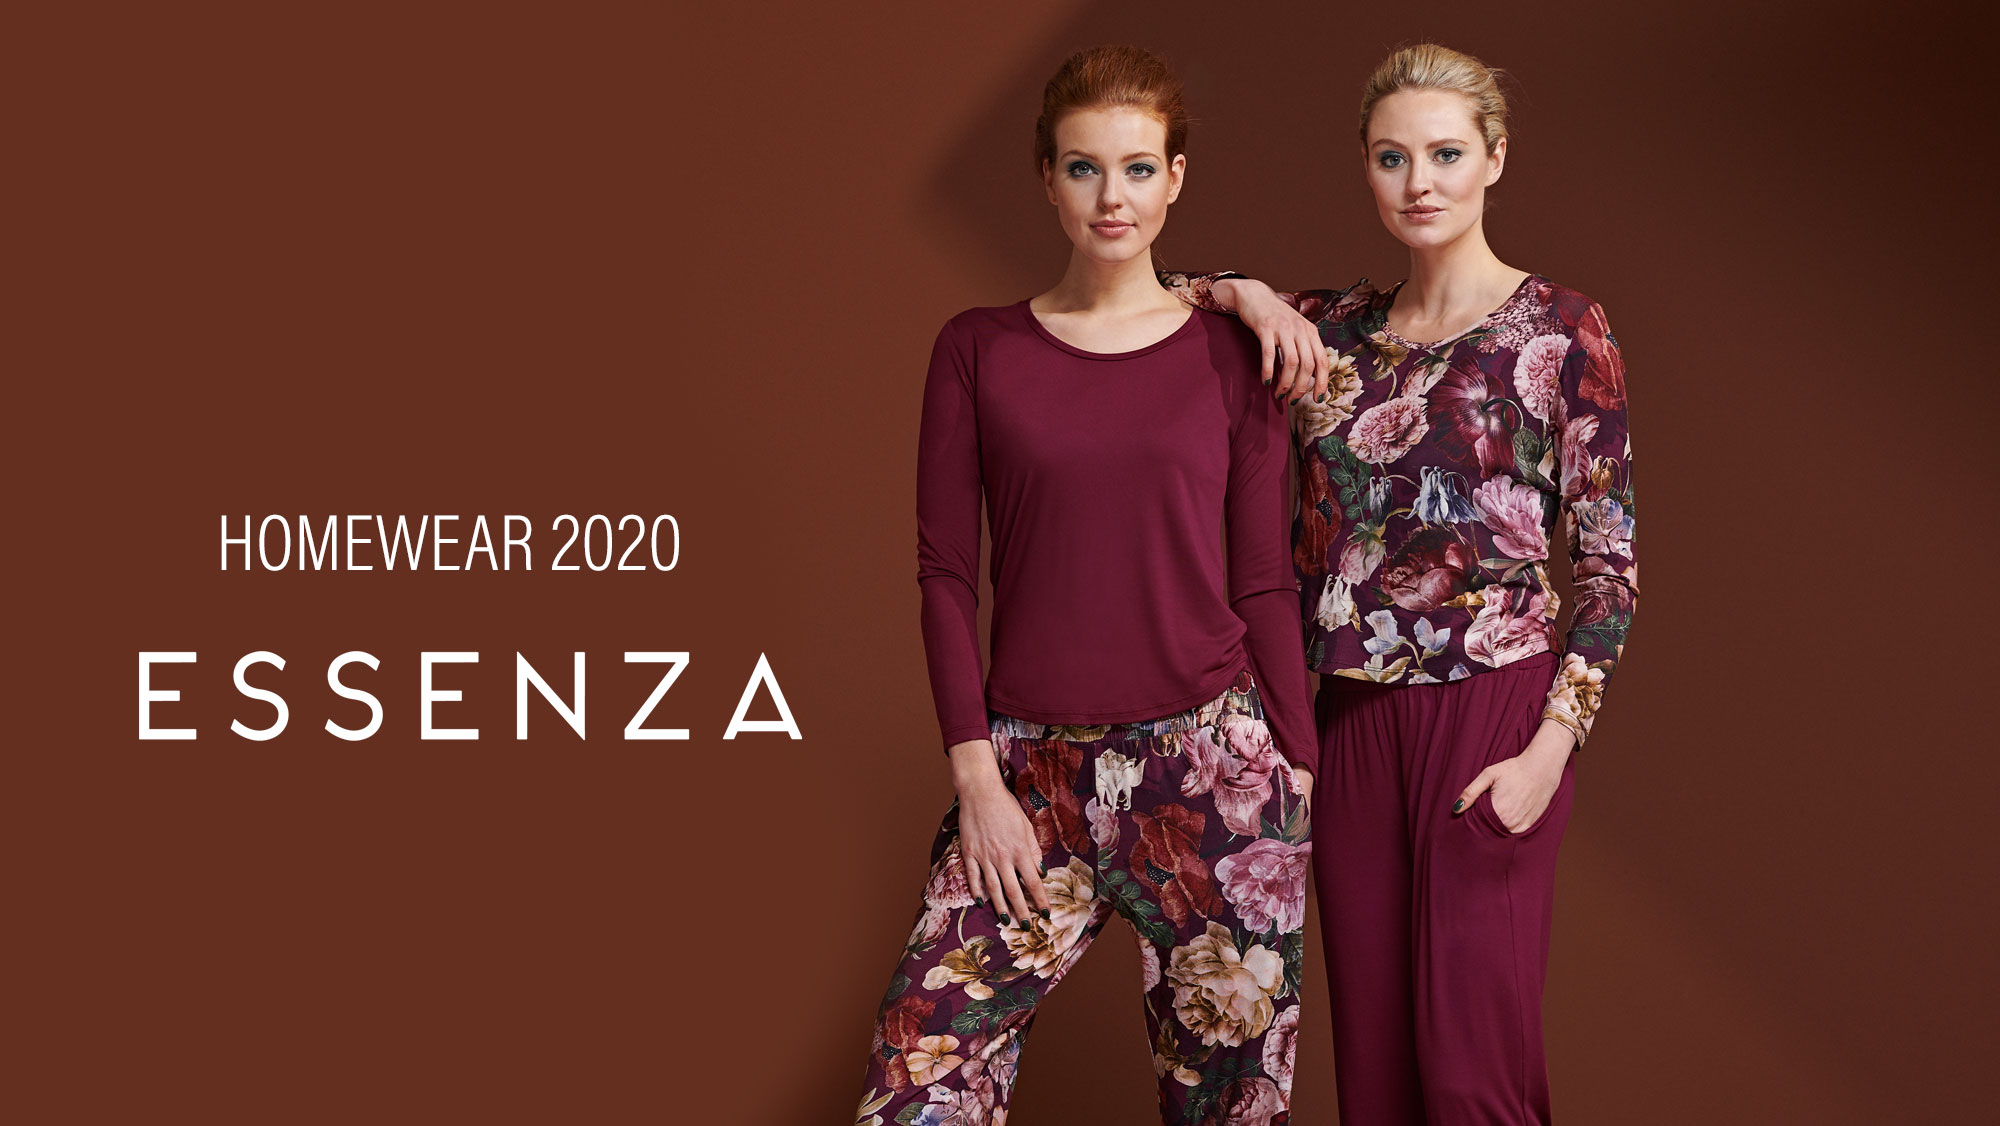 Essenza Homewear 2020